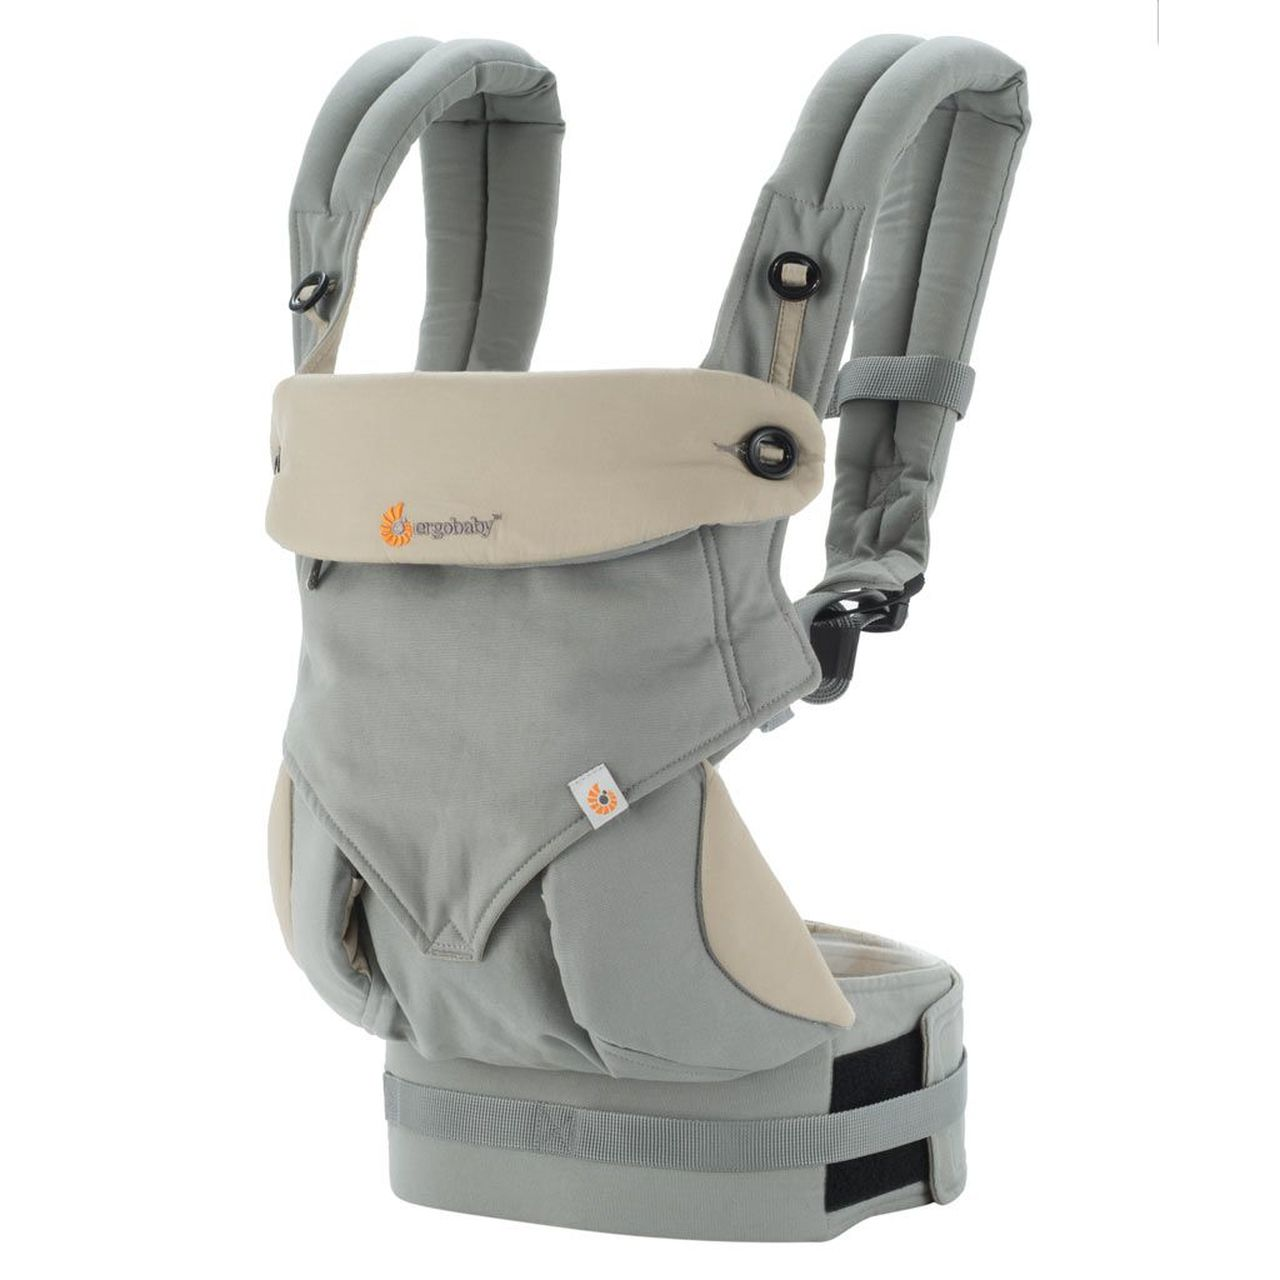 ErgoBaby 4 Position 360 Carrier